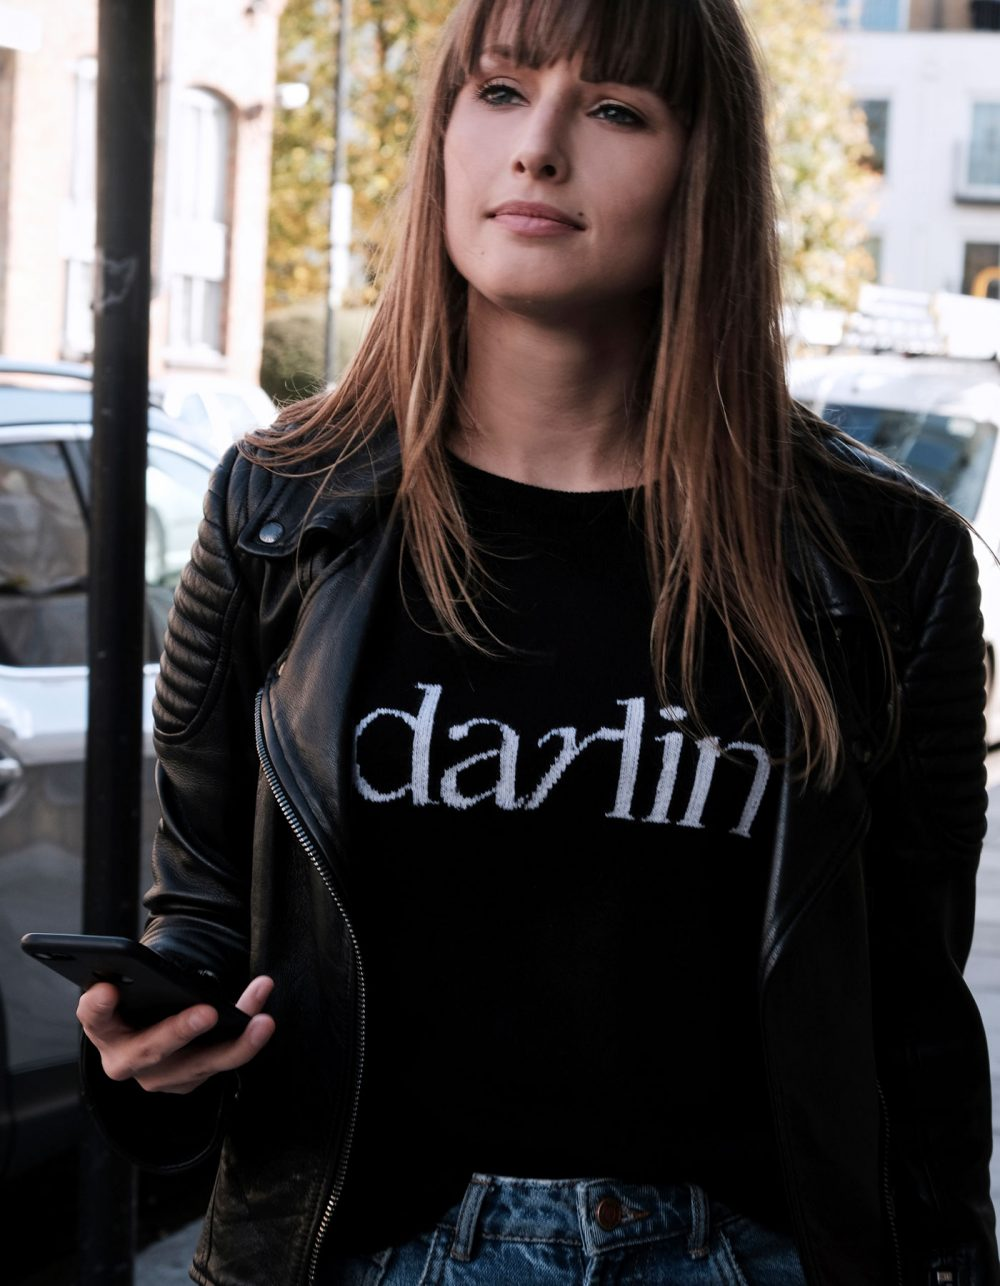 Darlin Black Cashmere by Malin Darlin